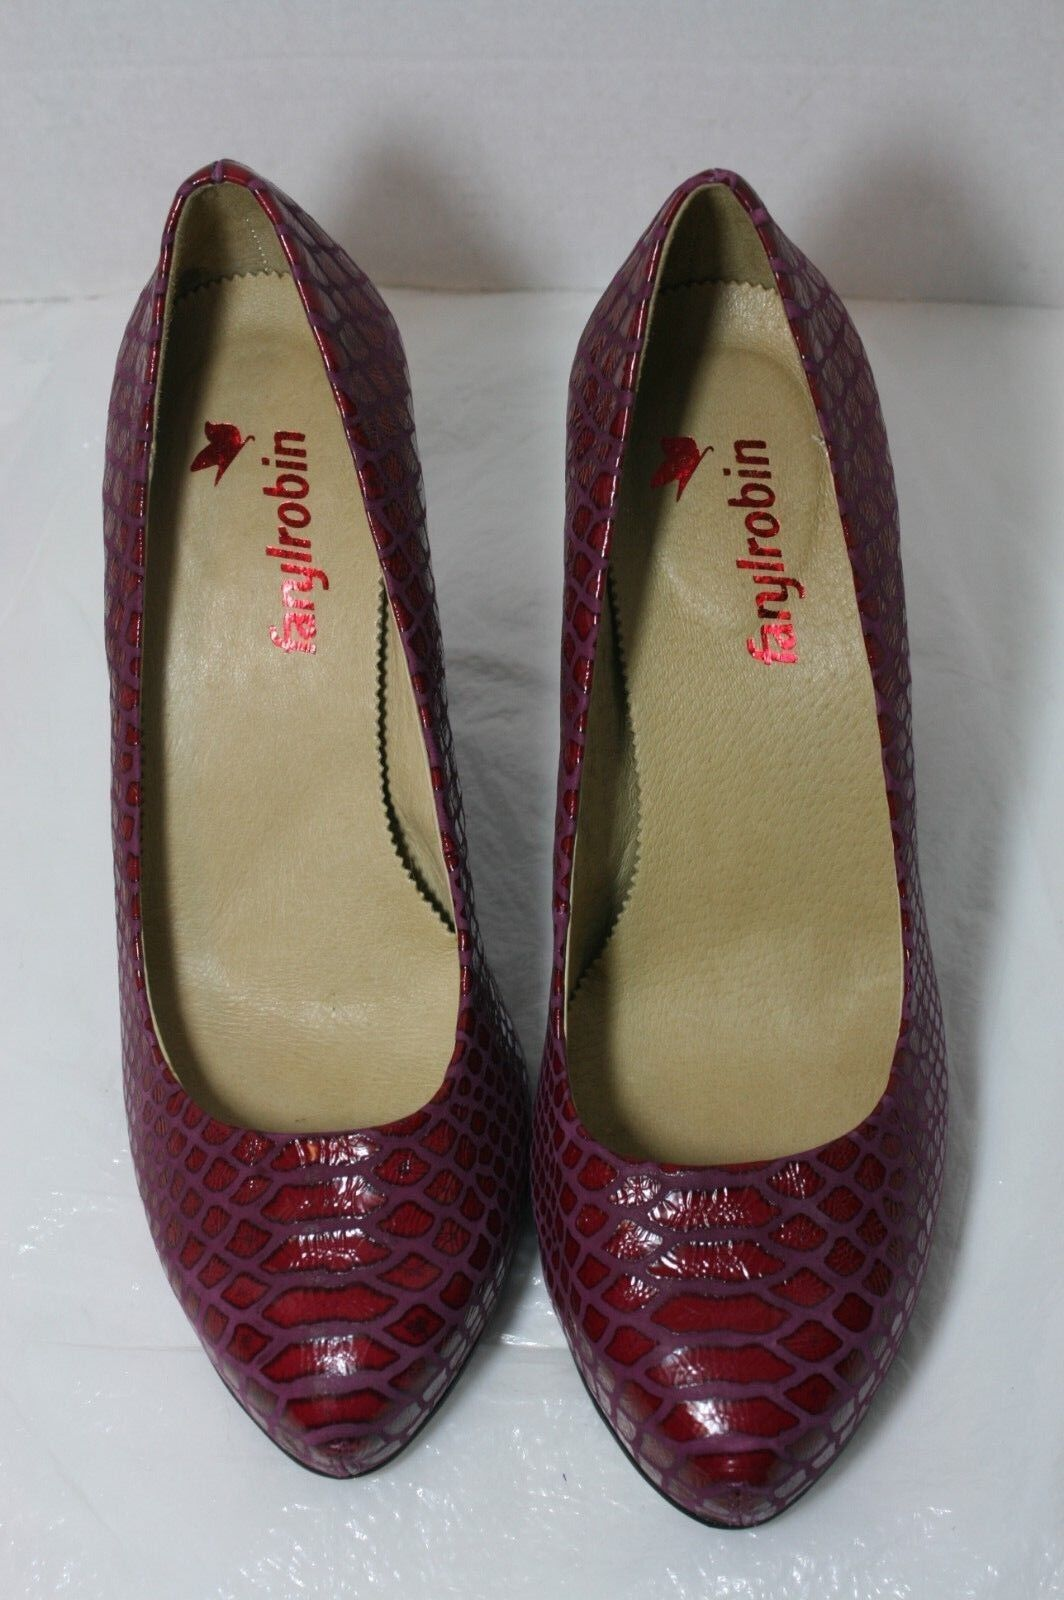 FARYL PLATFORM ROBIN 'QUALITY' SNAKE EFFECT LEATHER PLATFORM FARYL PUMP RED HEELS 8  209 54d2fc